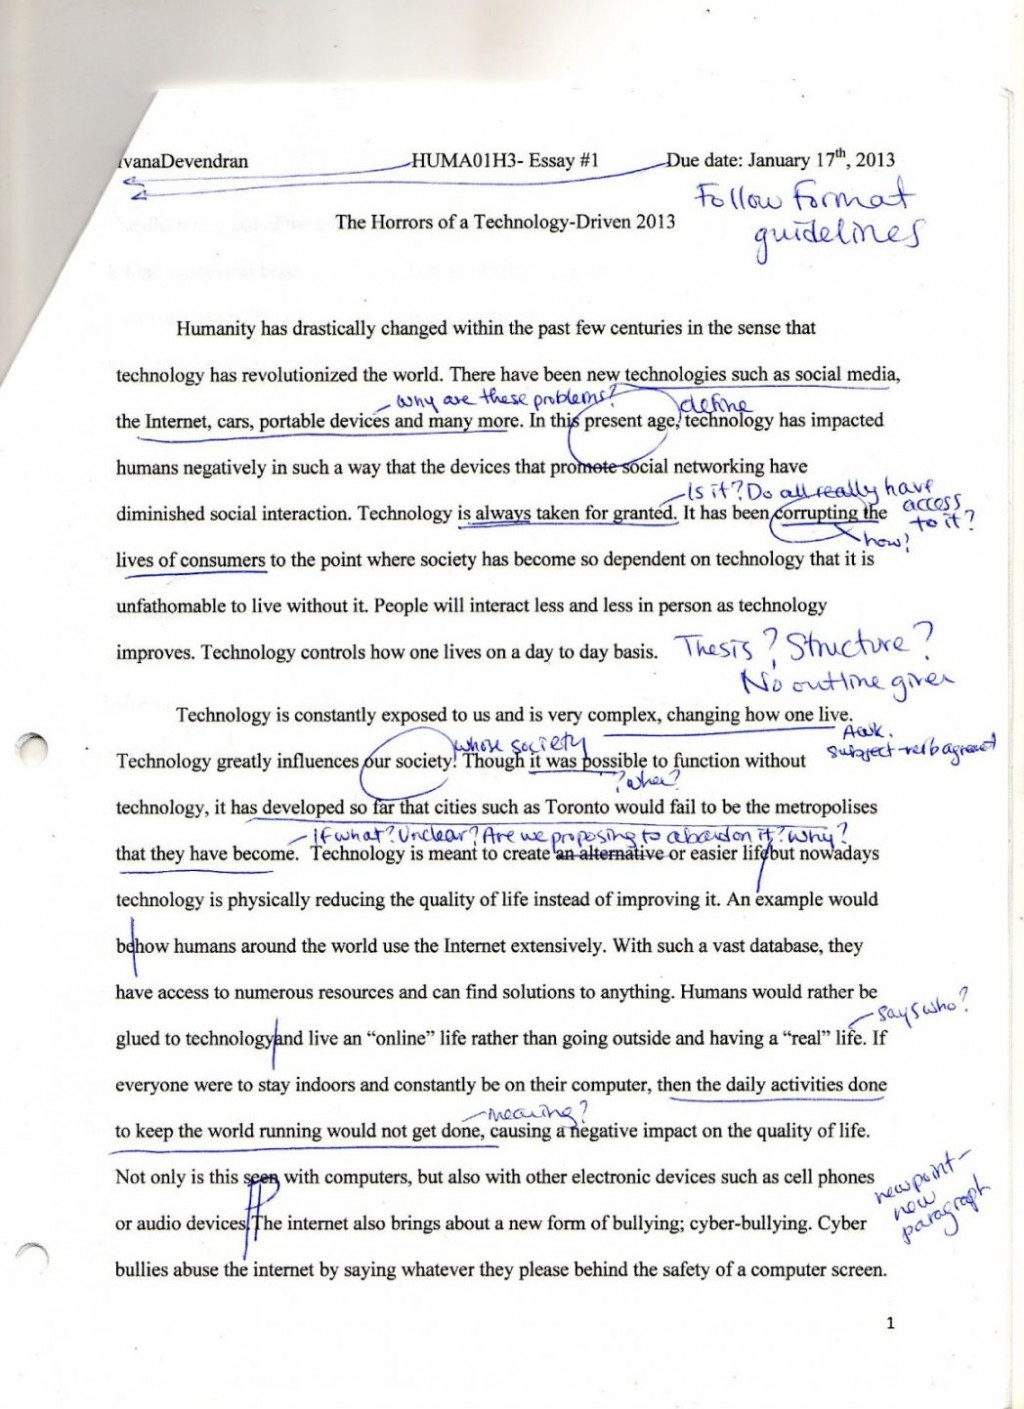 002 Essay Example Negative Effects Of Technology Topics On Humanities Positive I And Causes Unbelievable Short Communication Information Large